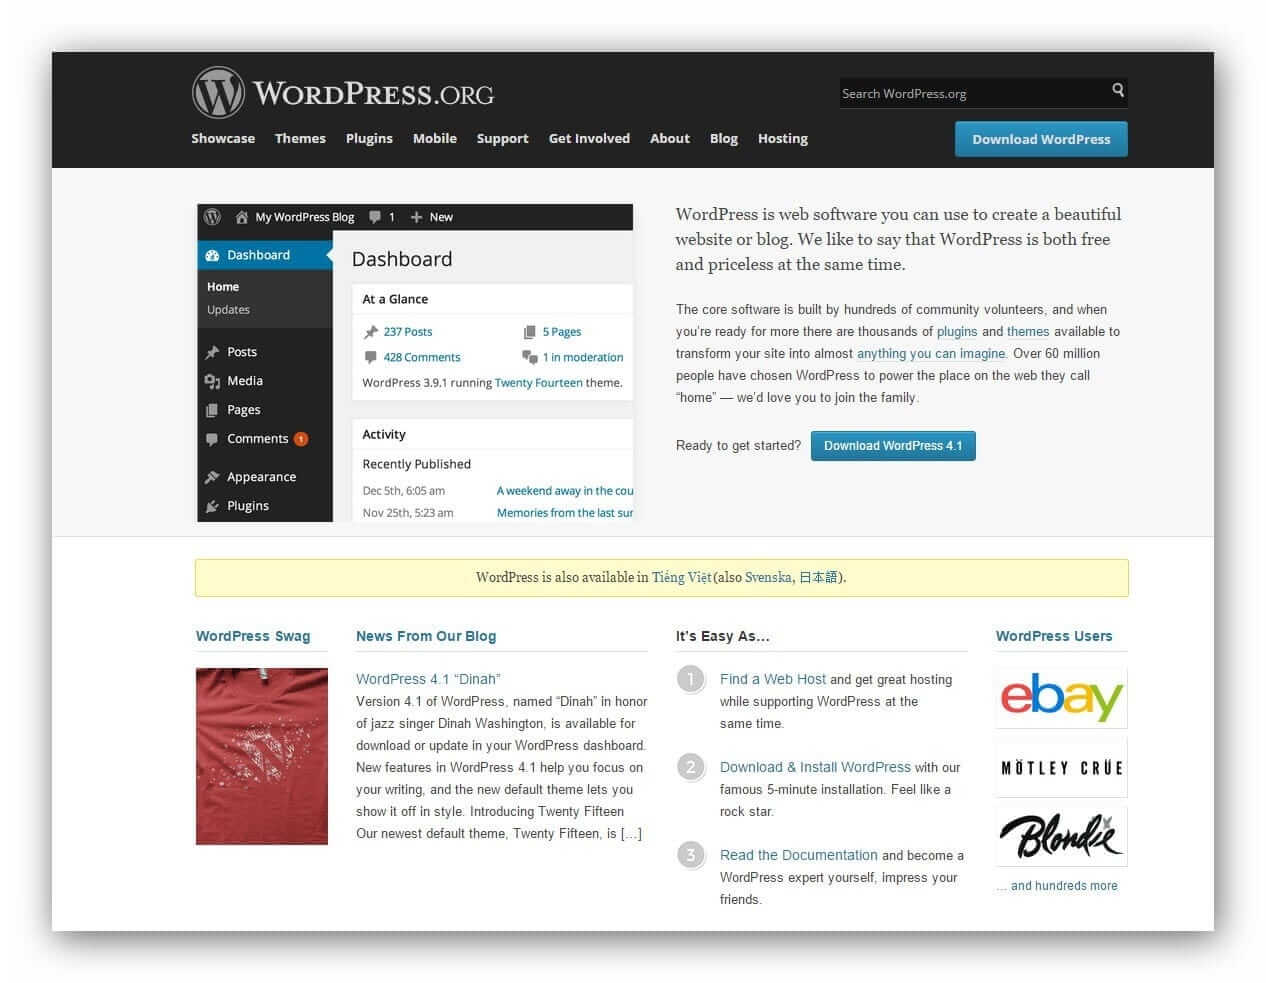 What is WordPress.Org?